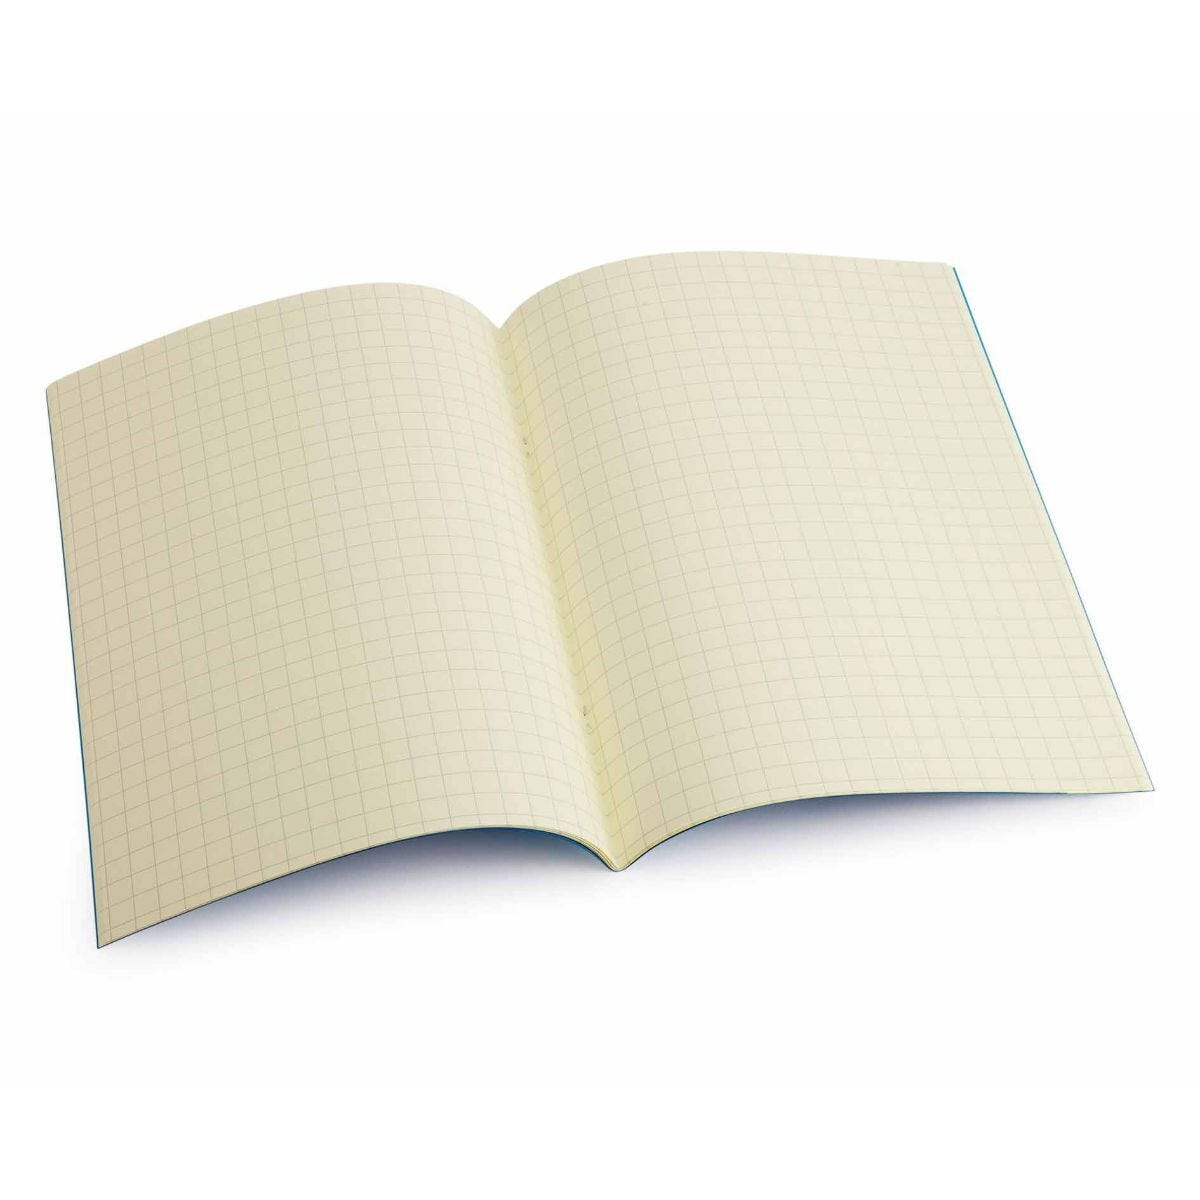 Tinted Exercise Books Squared A4 10mm Cream